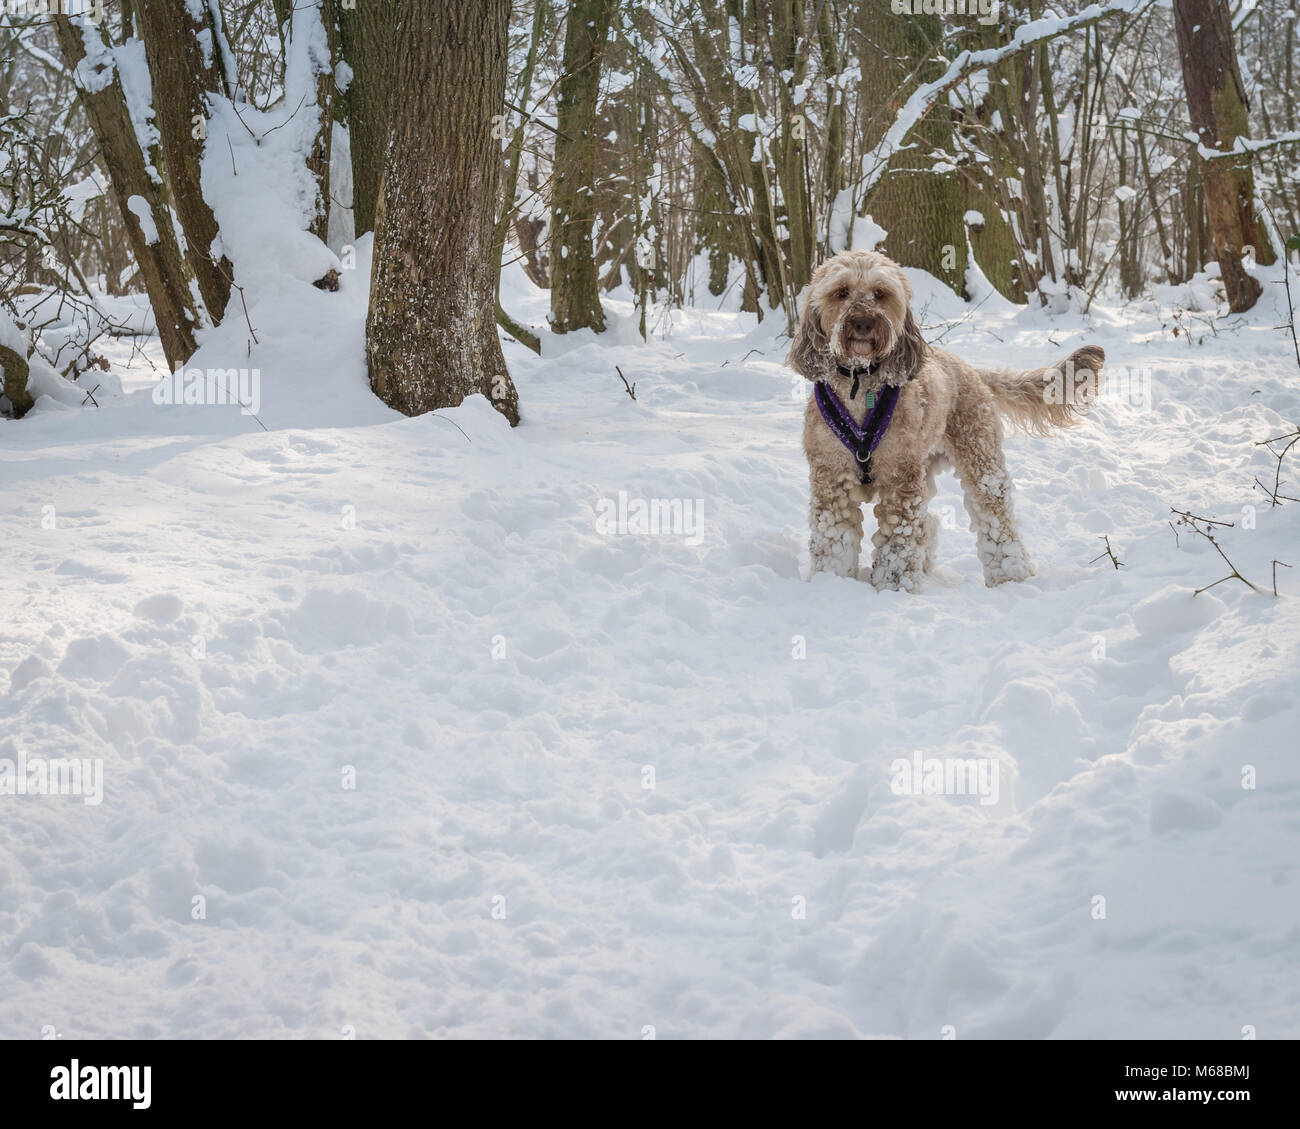 A Cockerpoo dog enjoys a snowy walk through the woods during the extreme cold Winter weather period known as The Stock Photo